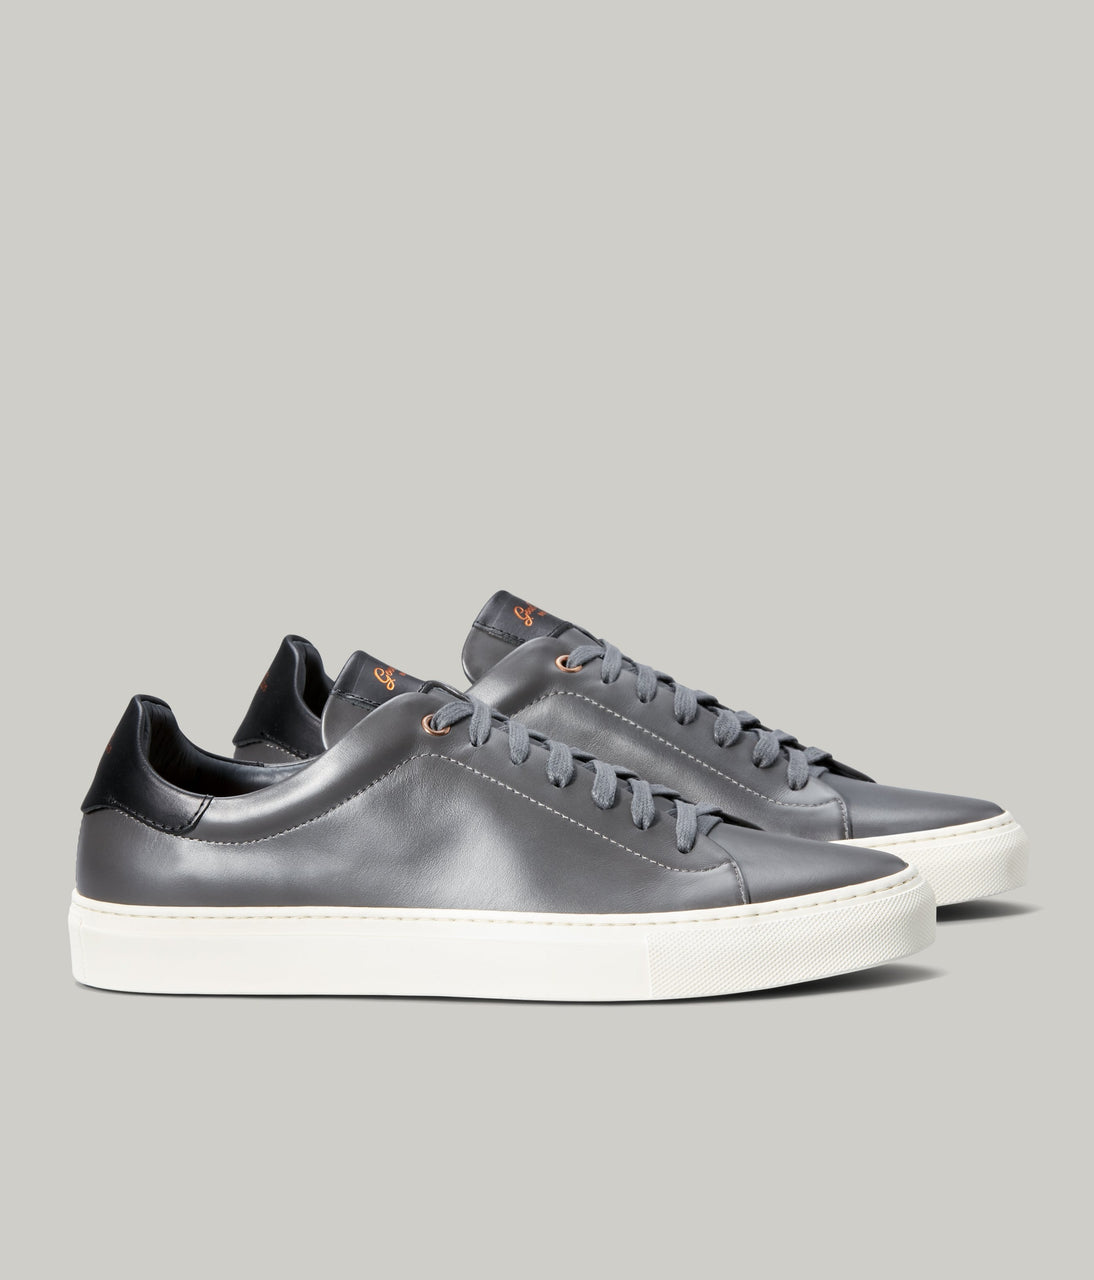 Legend Lo Top Sneaker - Charcoal / Black - Good Man Brand - Legend Lo Top Sneaker - Charcoal / Black